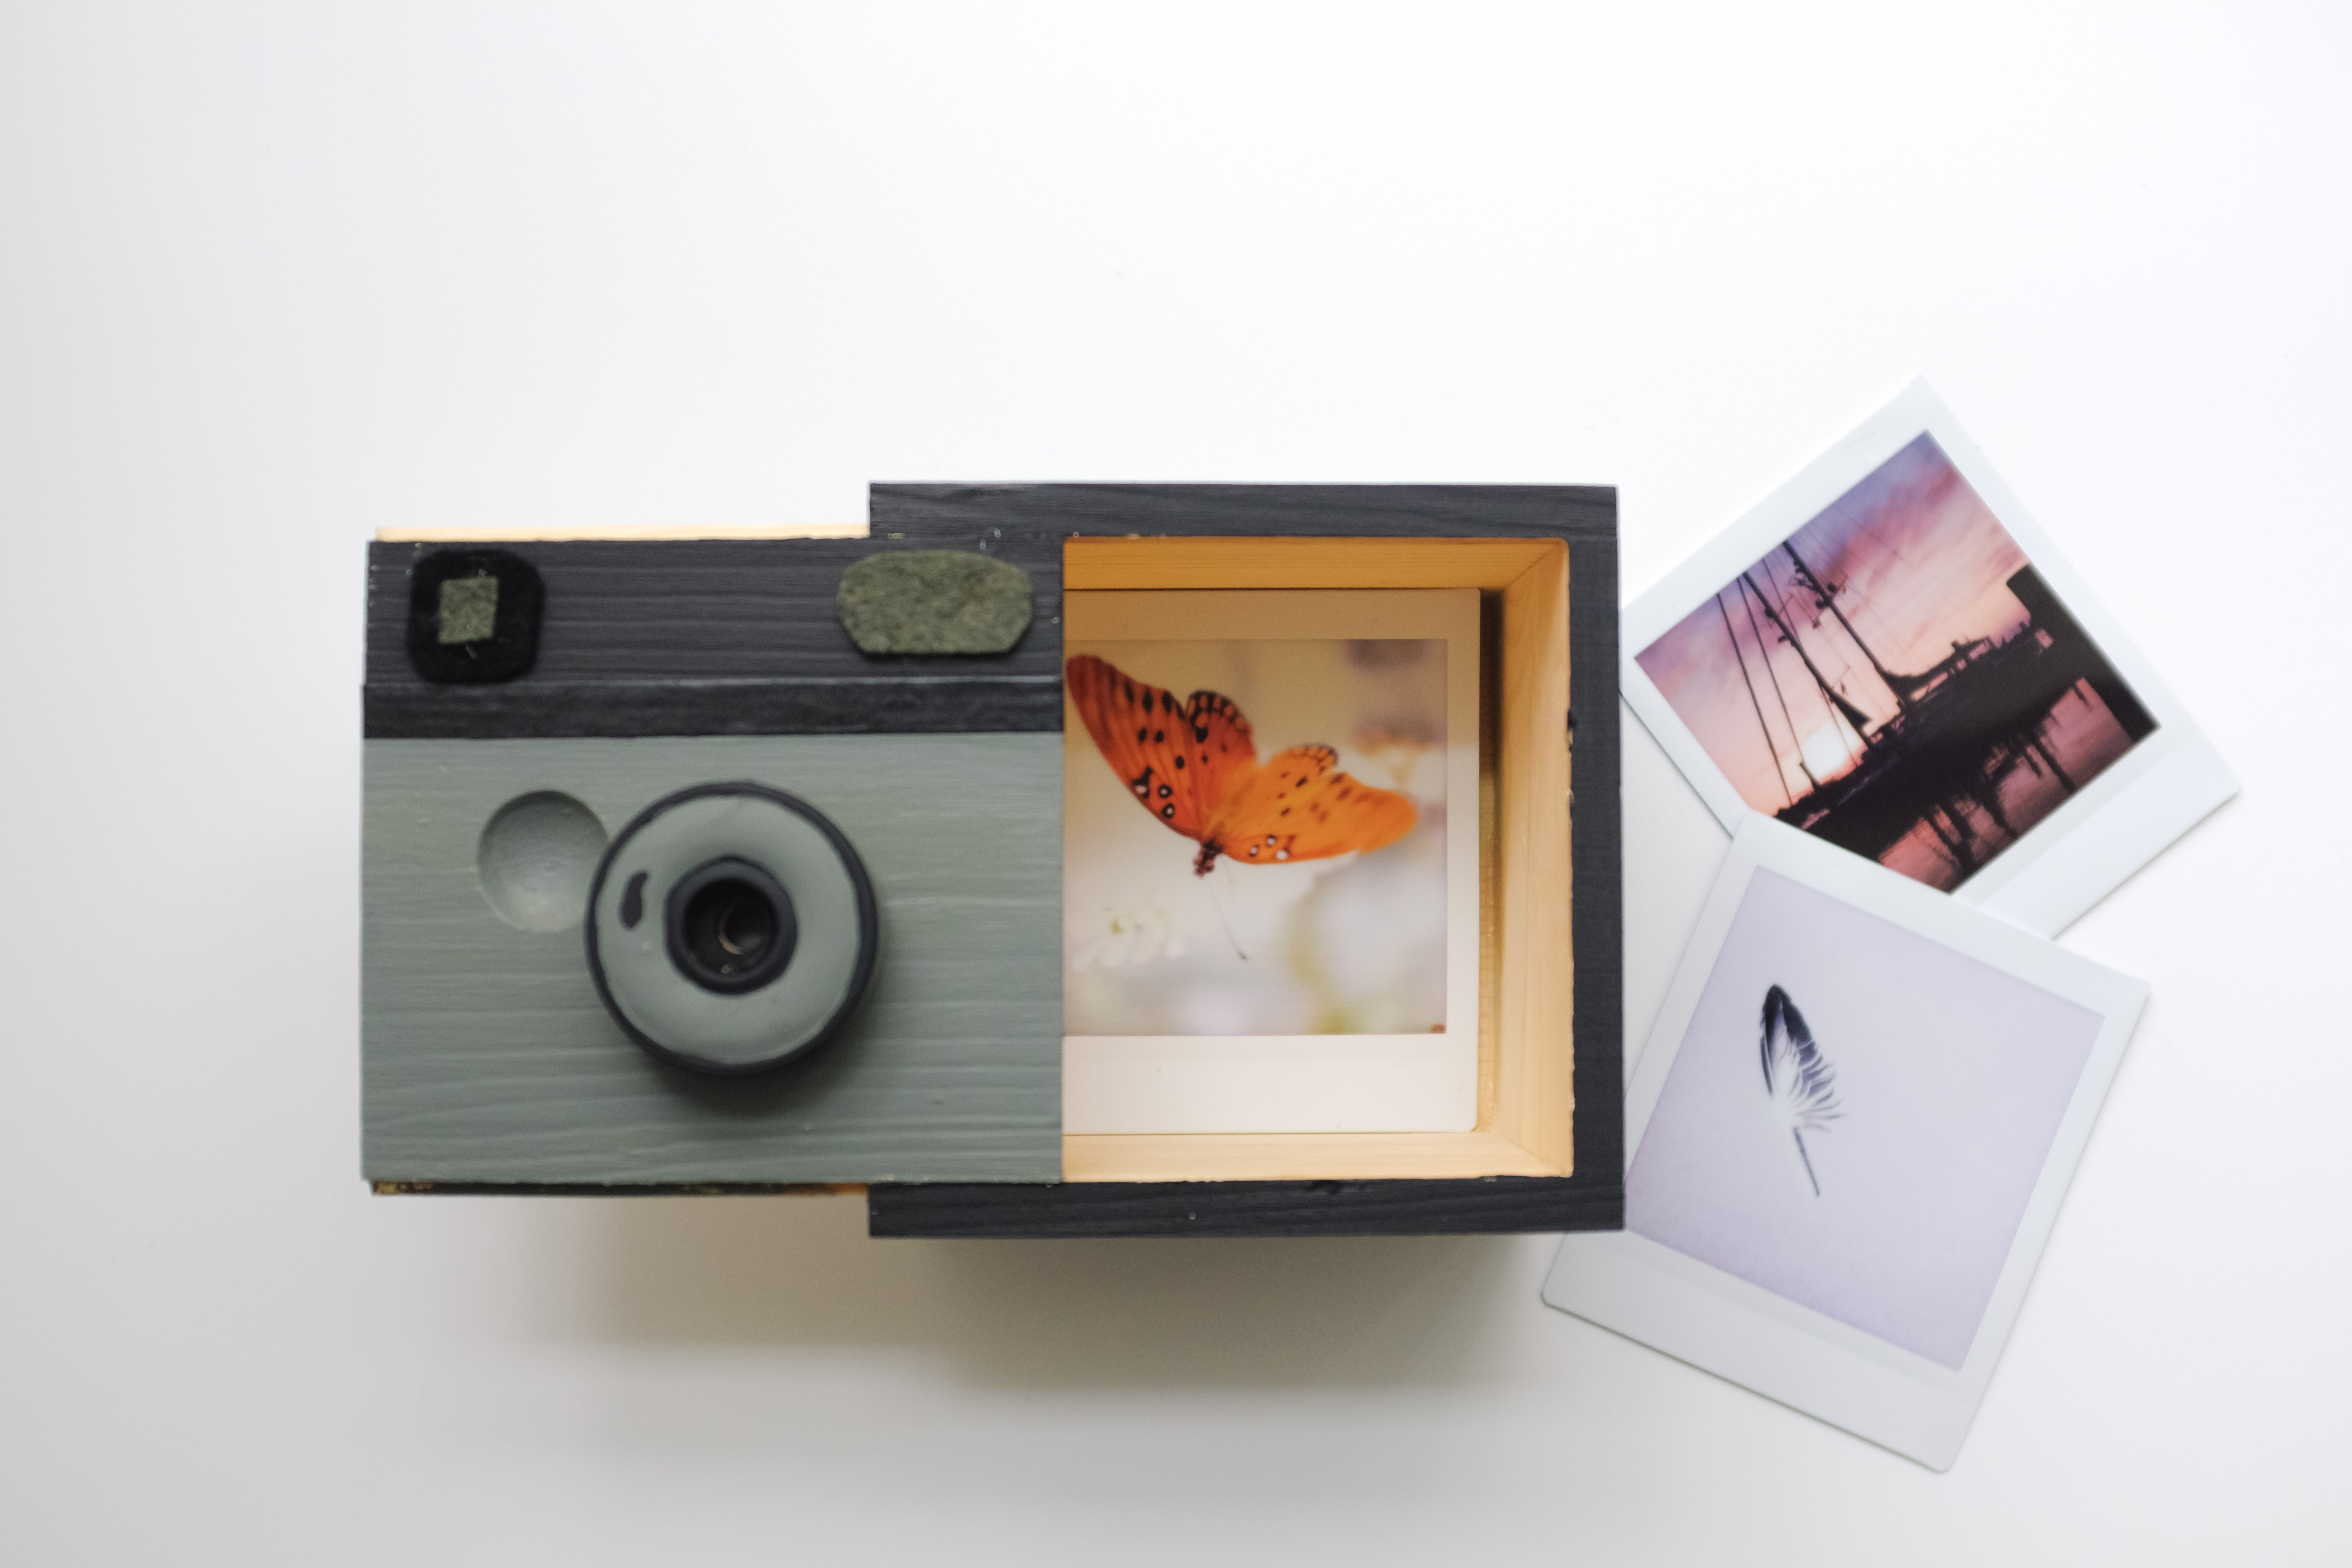 Instant Camera Fujifilm Instax DIY Photo Gift